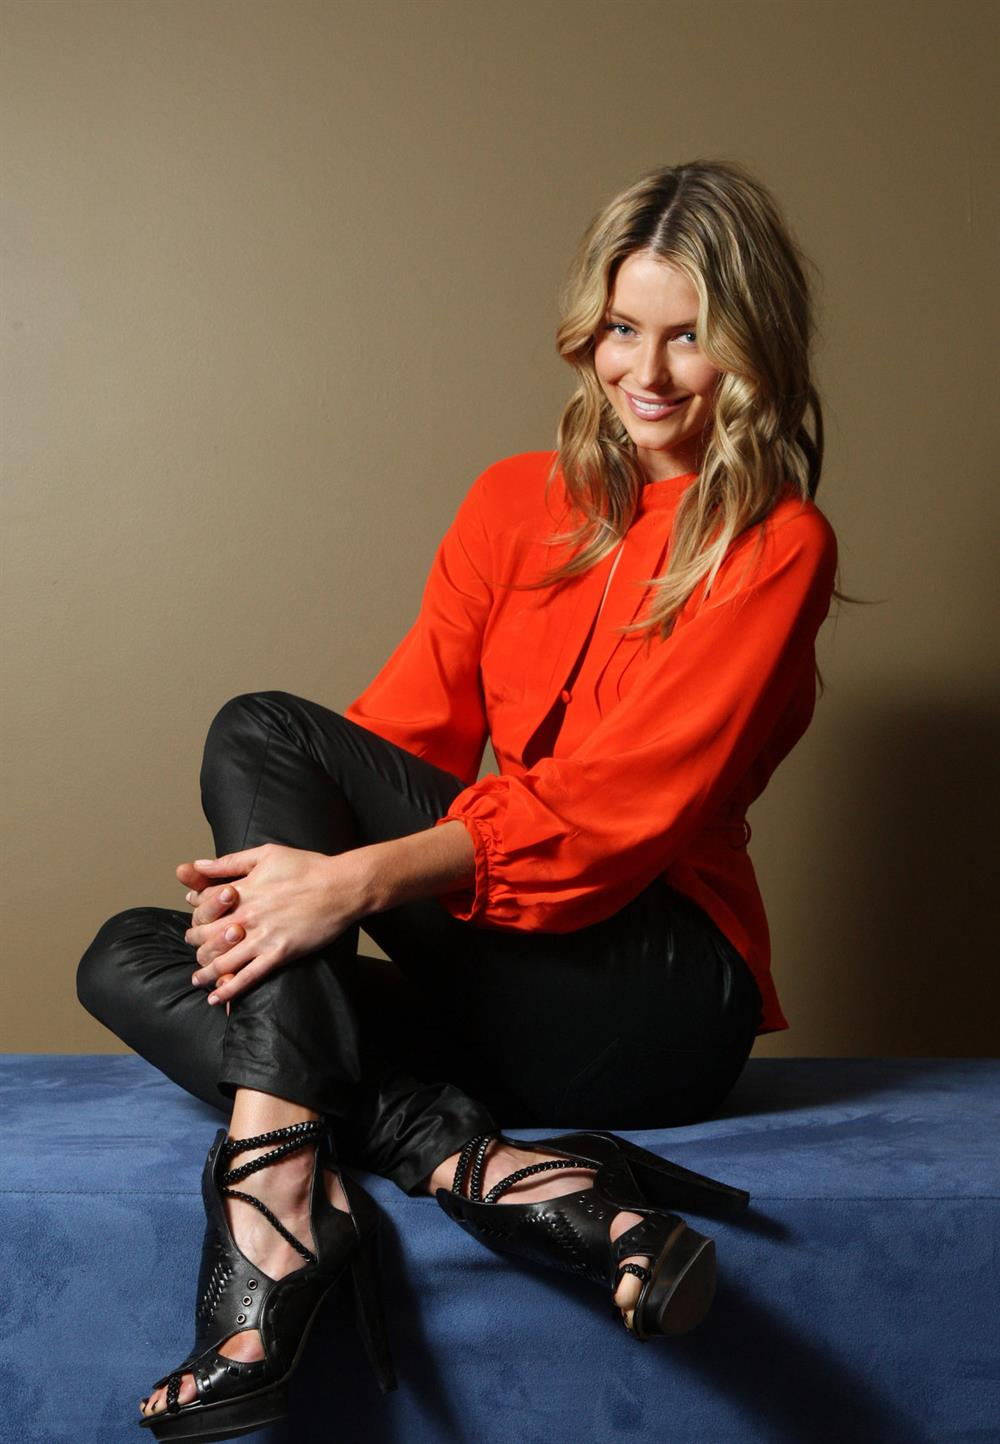 Jennifer hawkins photo shoots PHOTO GALLERY : January 2015 Mugshots - m